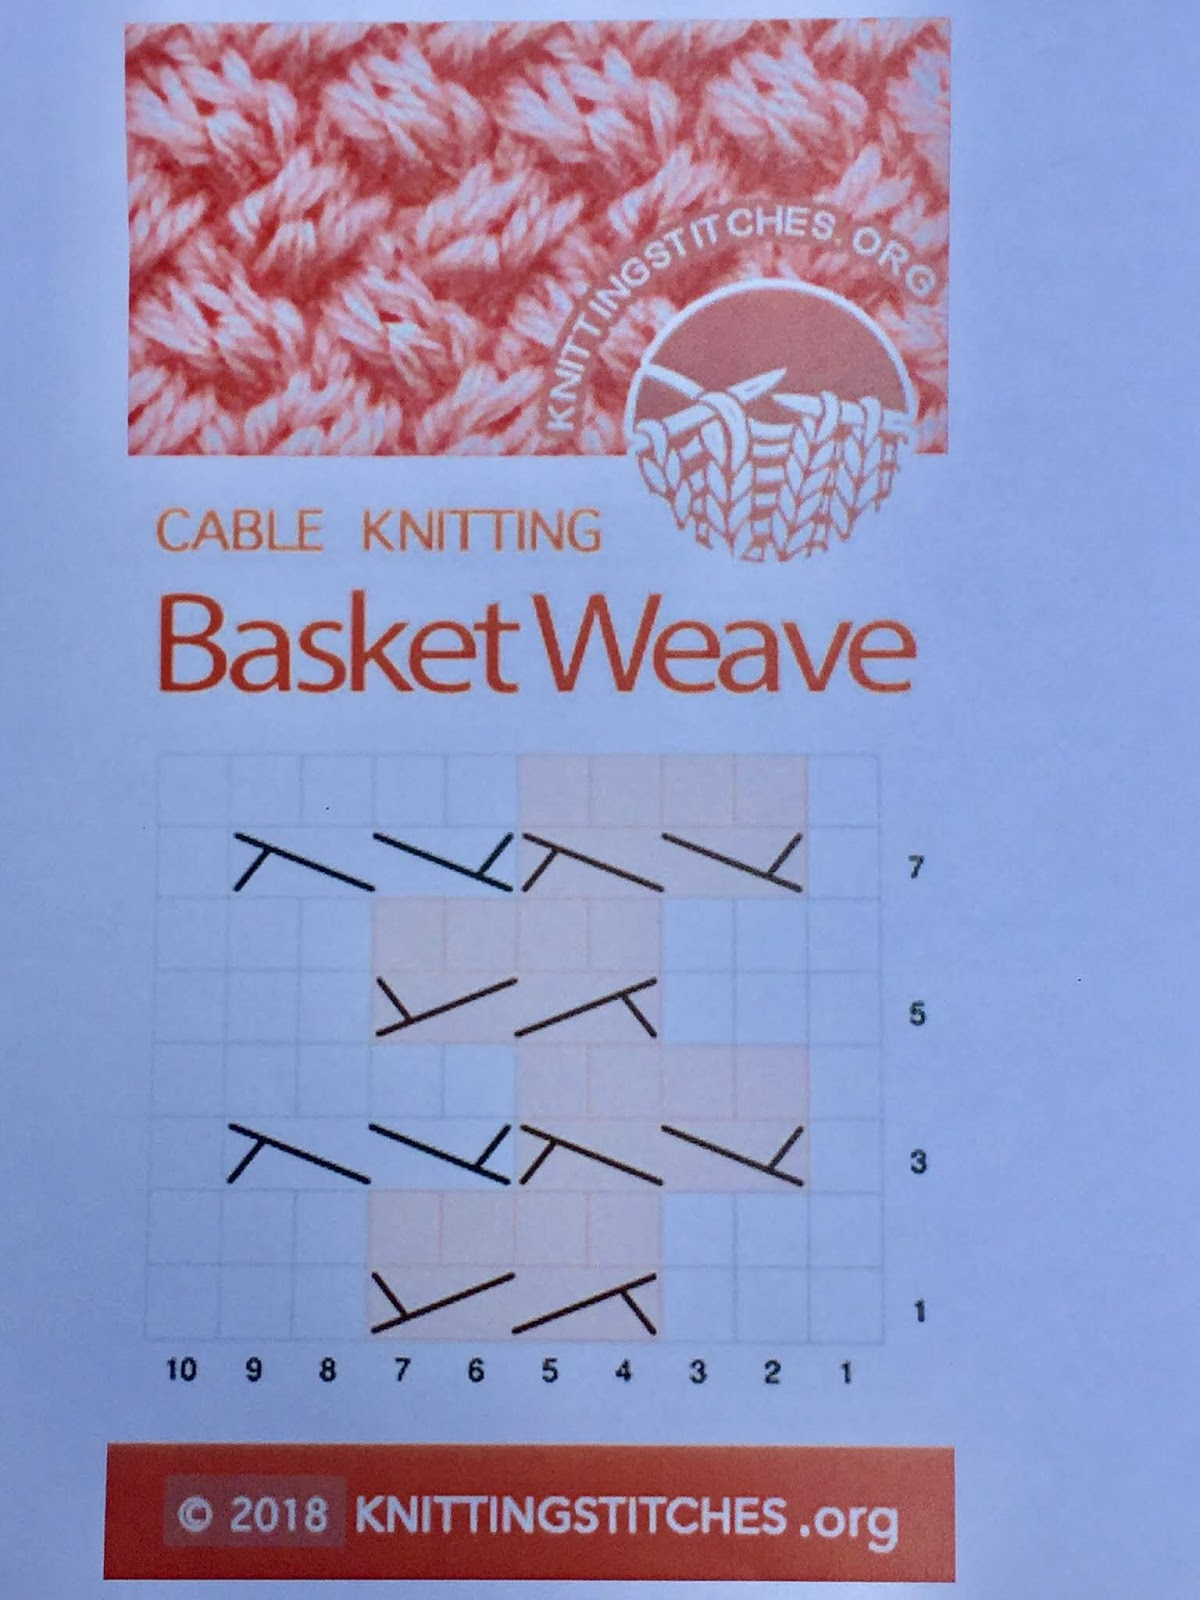 Knitting Stitches 2018 - Basket Weave Cable Pattern